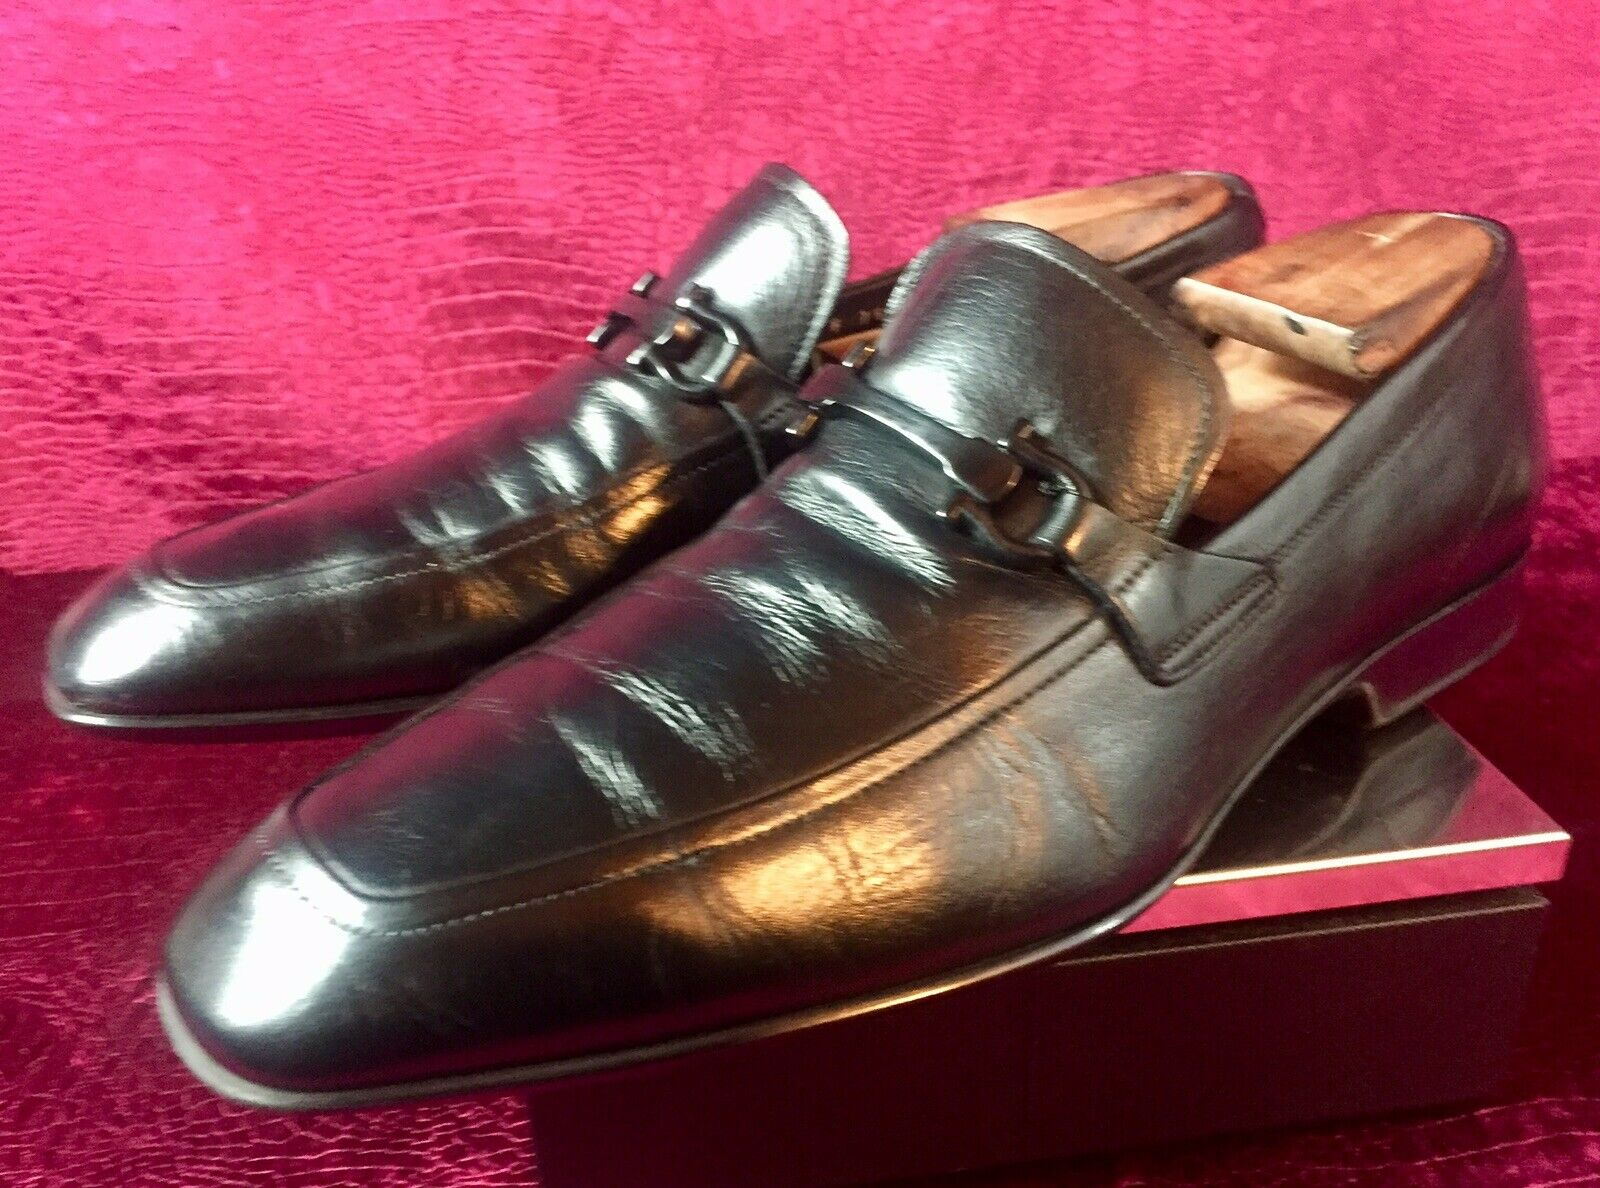 680.00 Mens Salvatore Ferragamo Black Leather Loafers Sz 11 US Made In ITALY